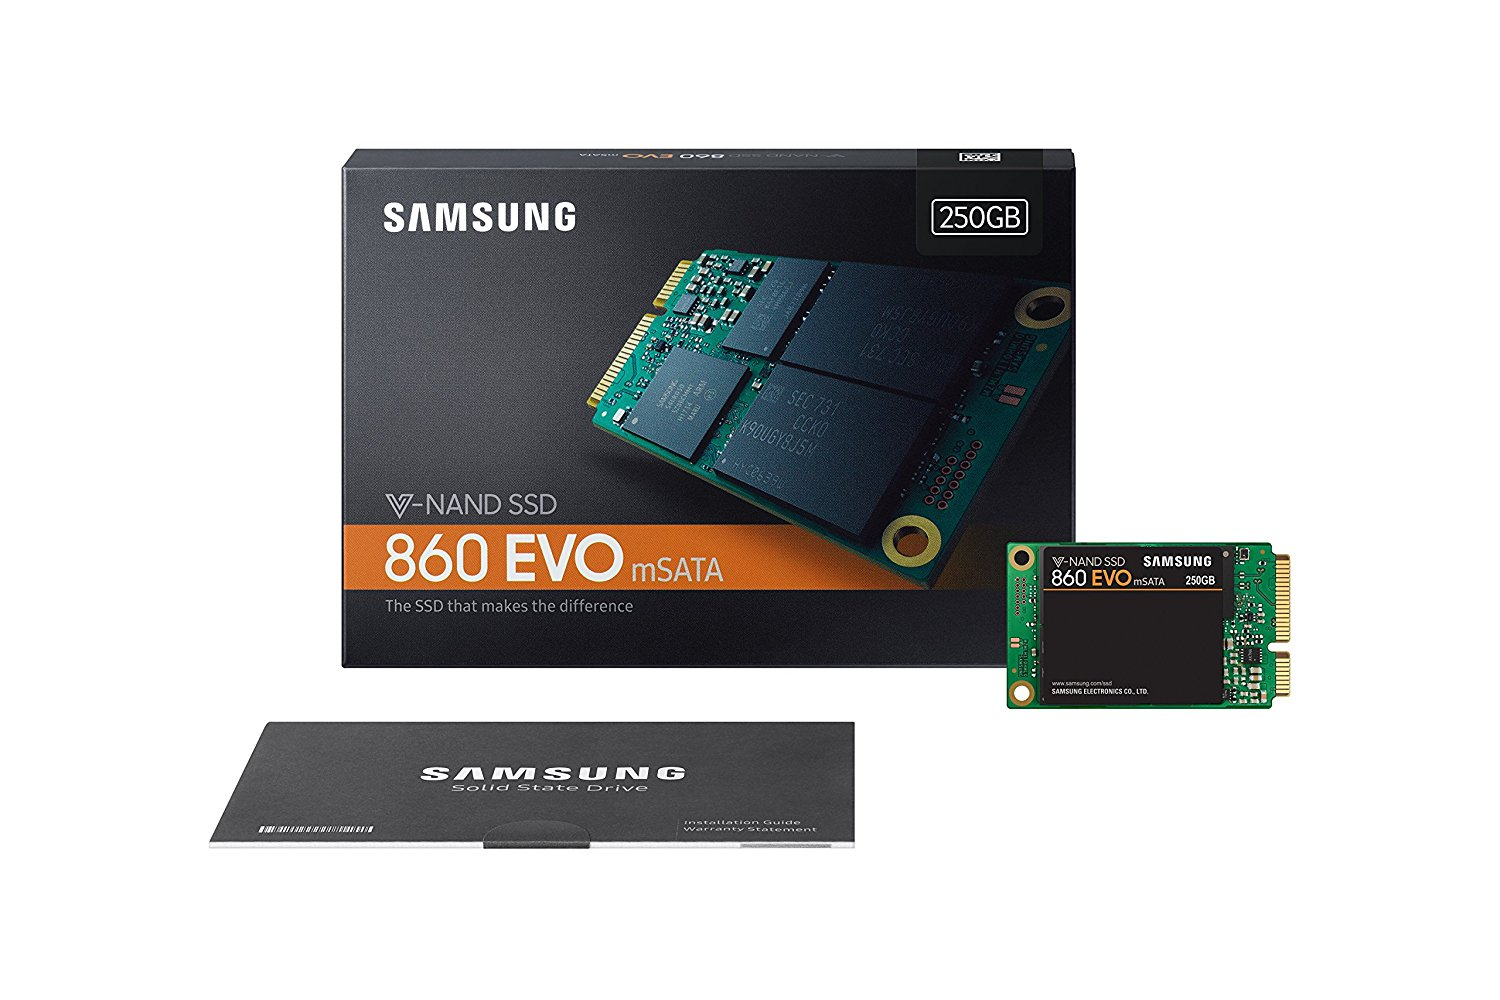 ssd 250gb msata3 v nand tlc samsung 860 evo eventus sistemi. Black Bedroom Furniture Sets. Home Design Ideas